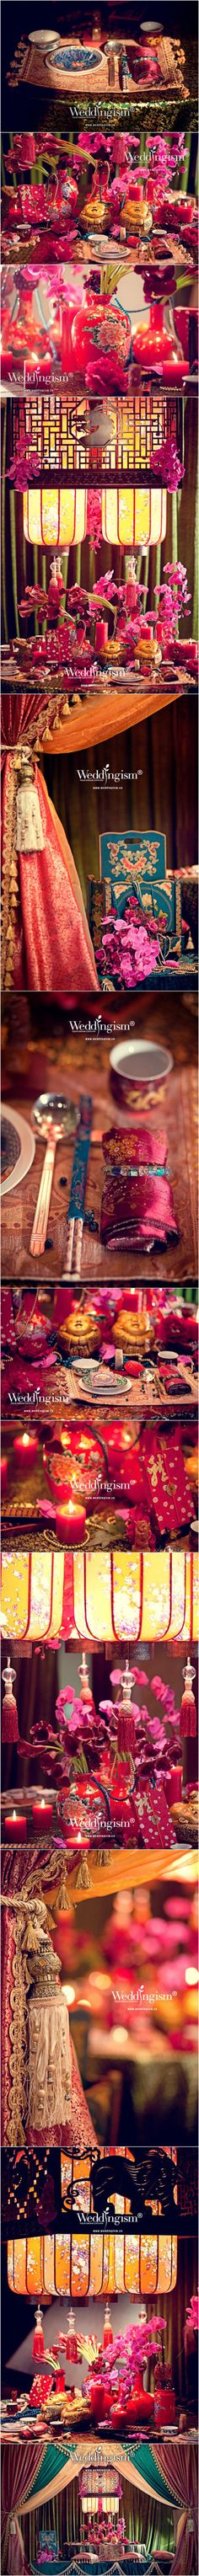 Jewel toned Chinese style wedding by 婚礼主义 Weddingism in Shanghai. Seriously love their work